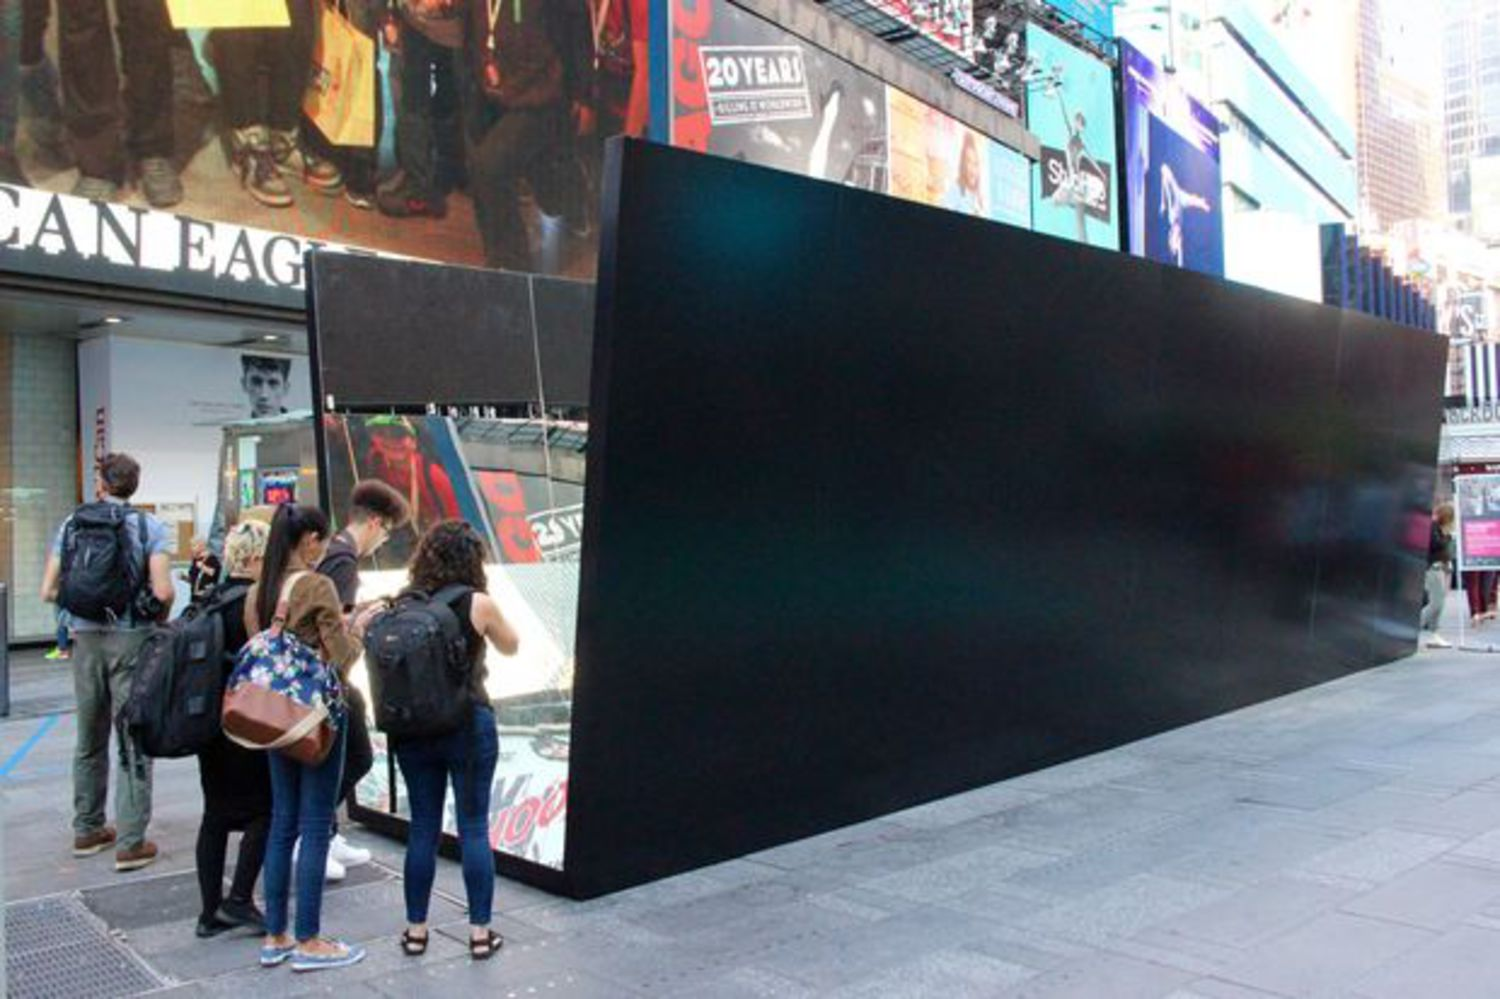 An exterior view of the installation.